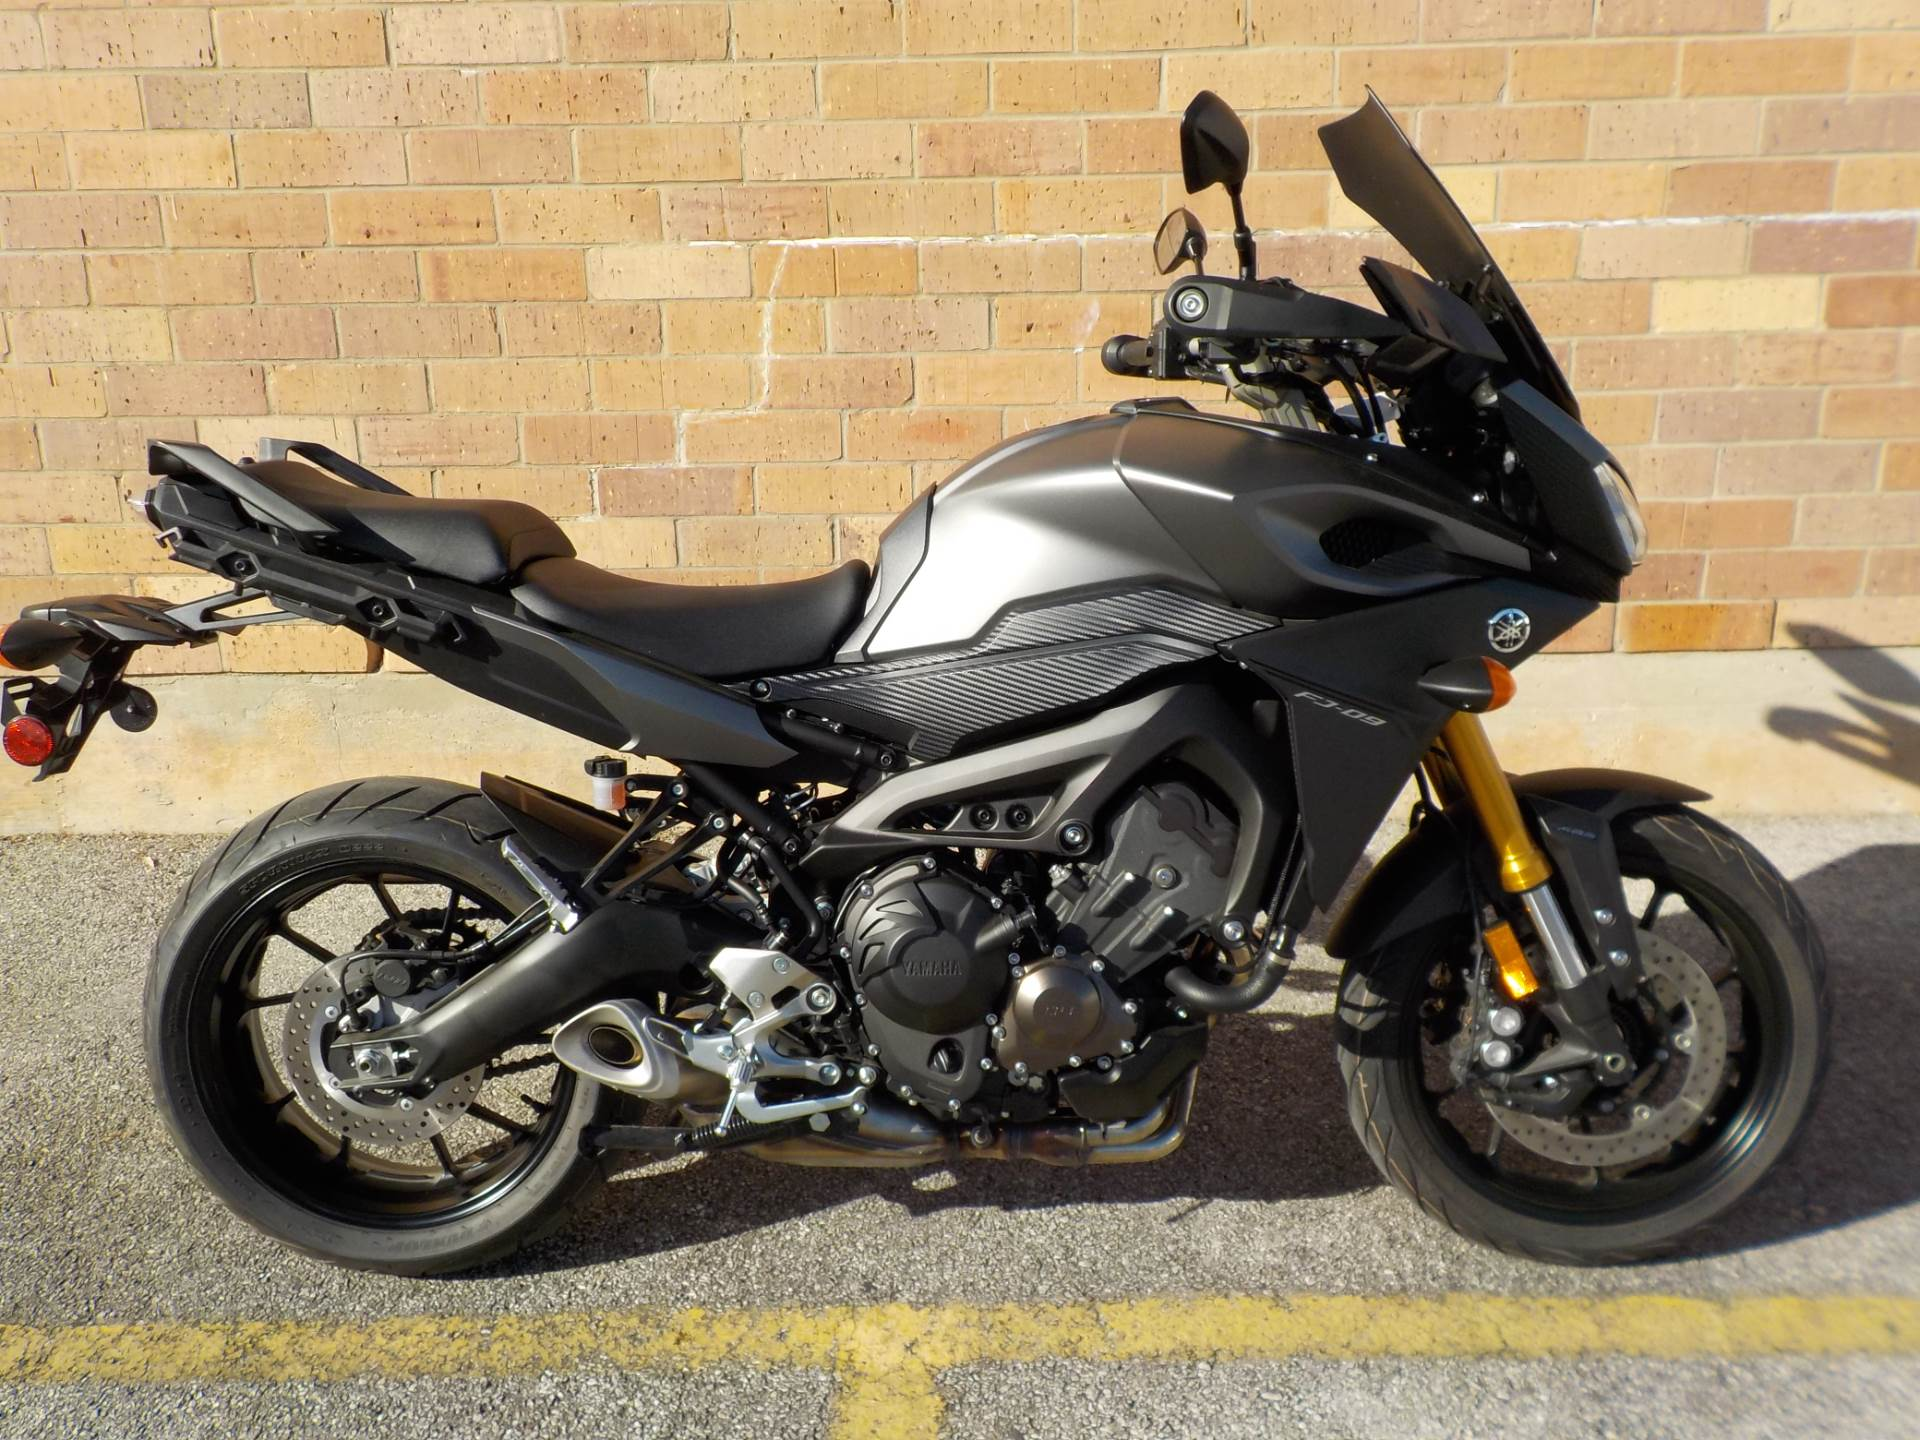 2015 Yamaha FJ-09 for sale 19836